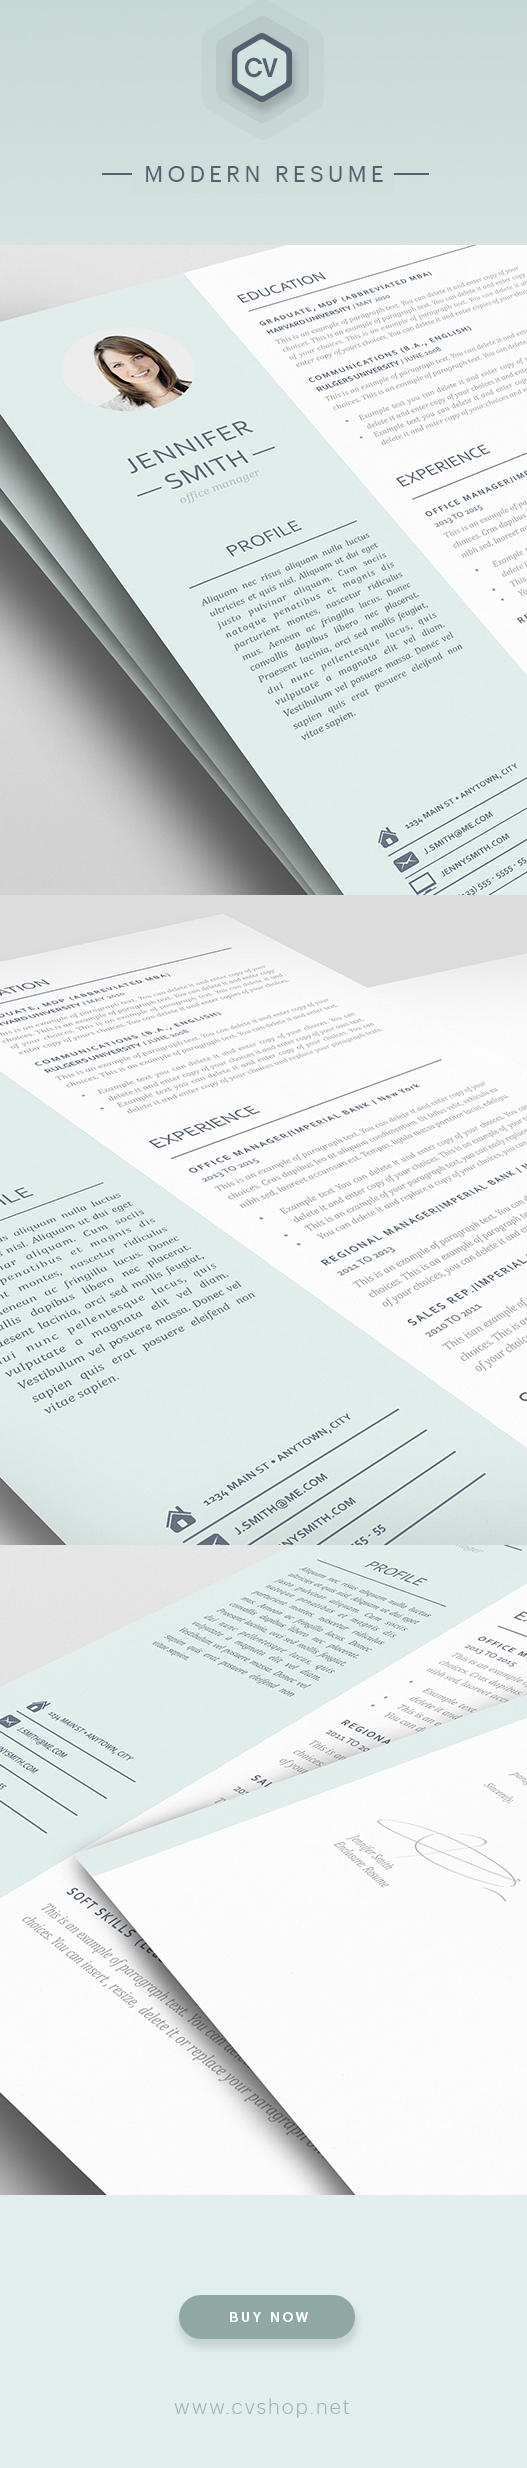 NET cvshop Modern Resume Templates